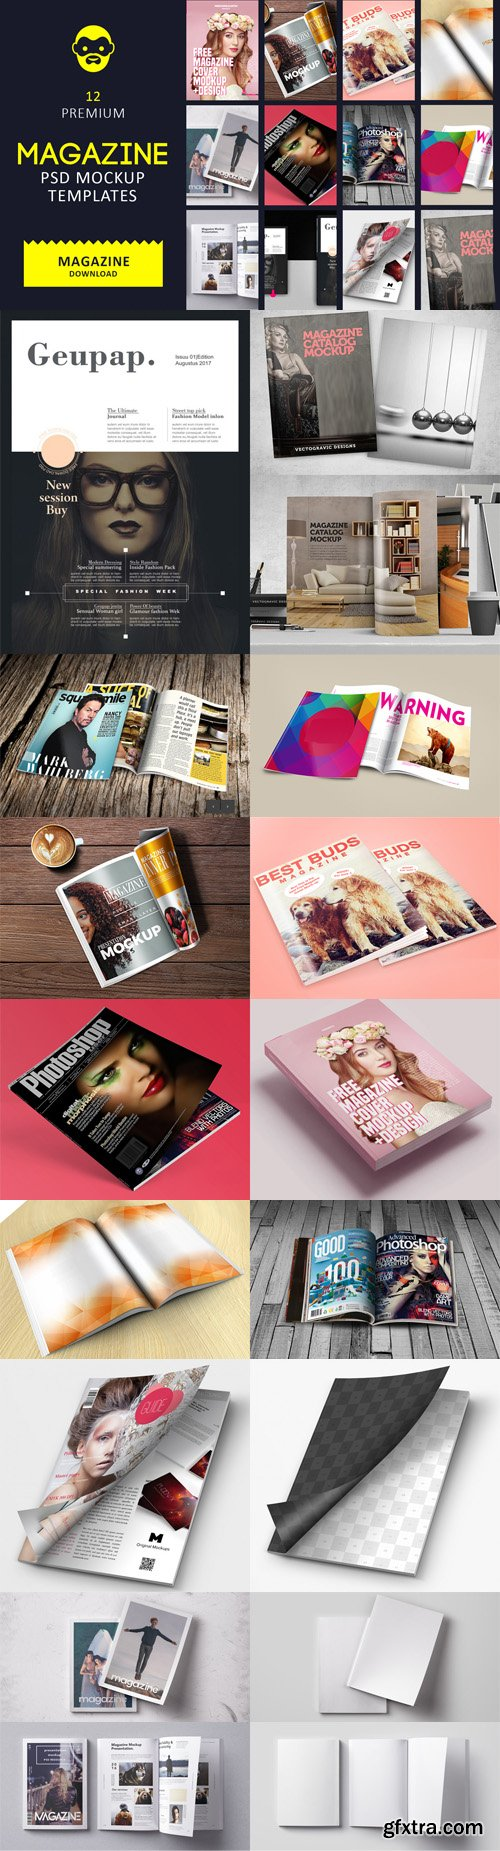 12 Best Magazine PSD Mockup Templates